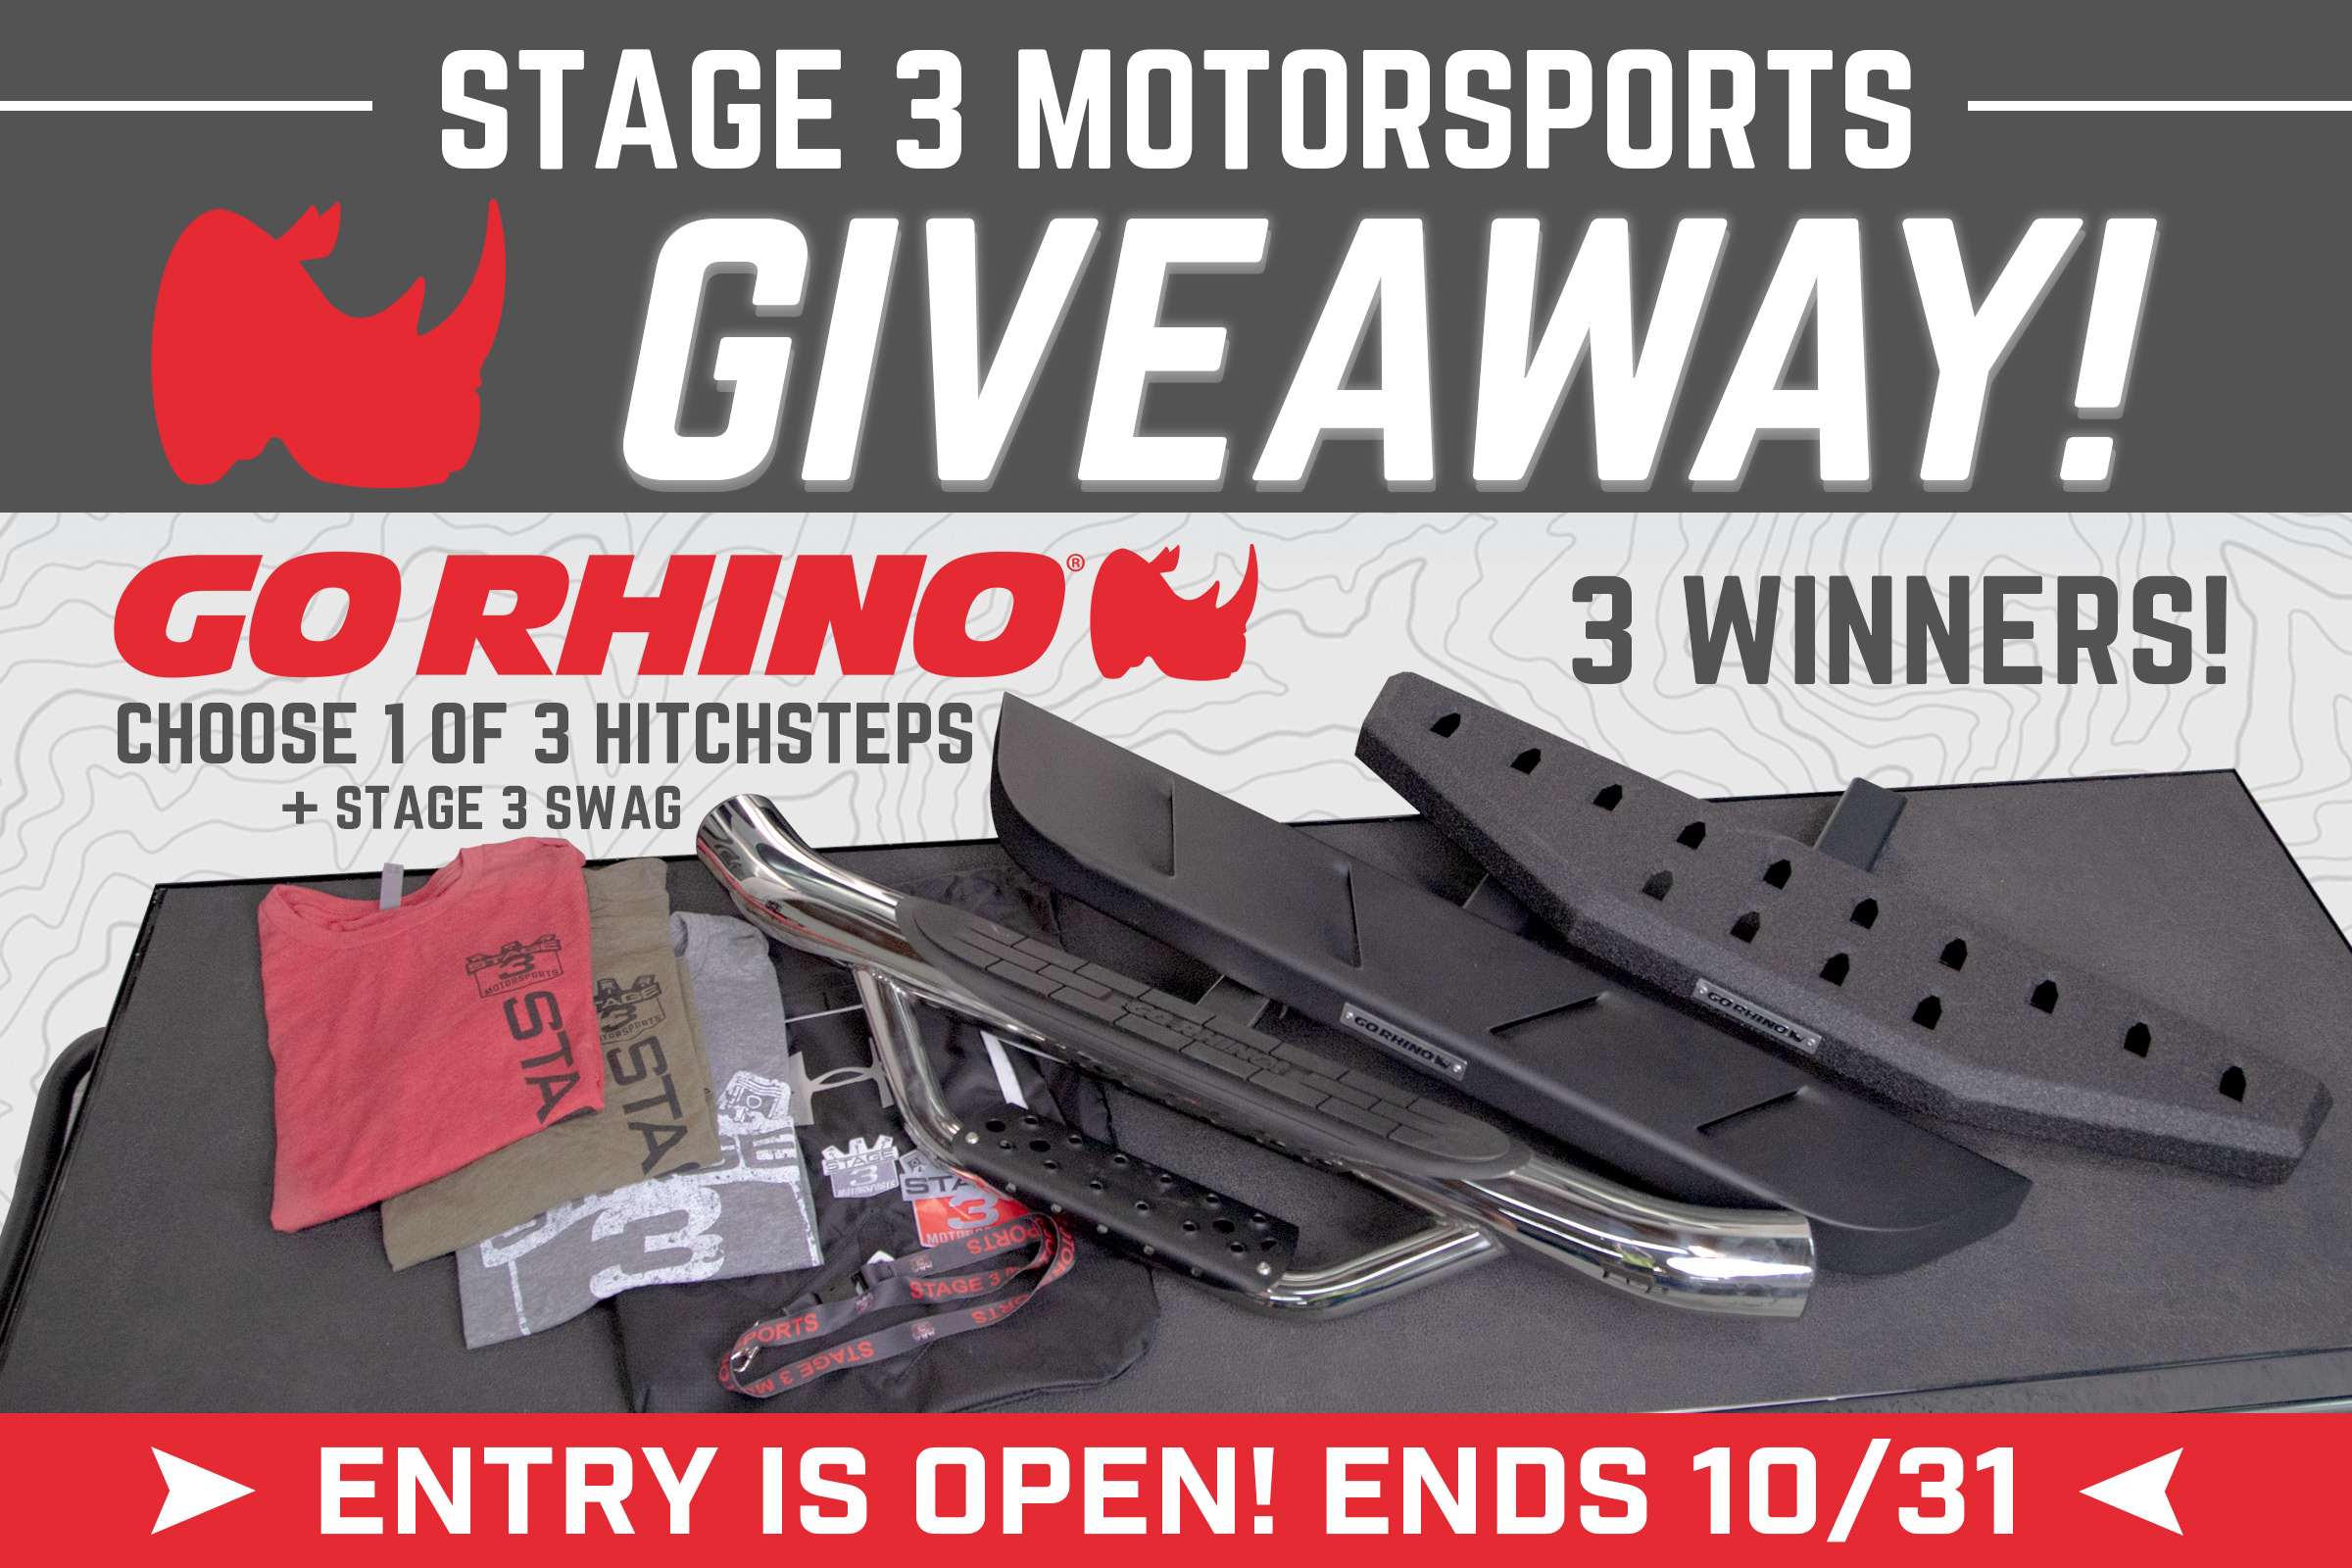 Go Rhino Hitch Step October Giveaway!